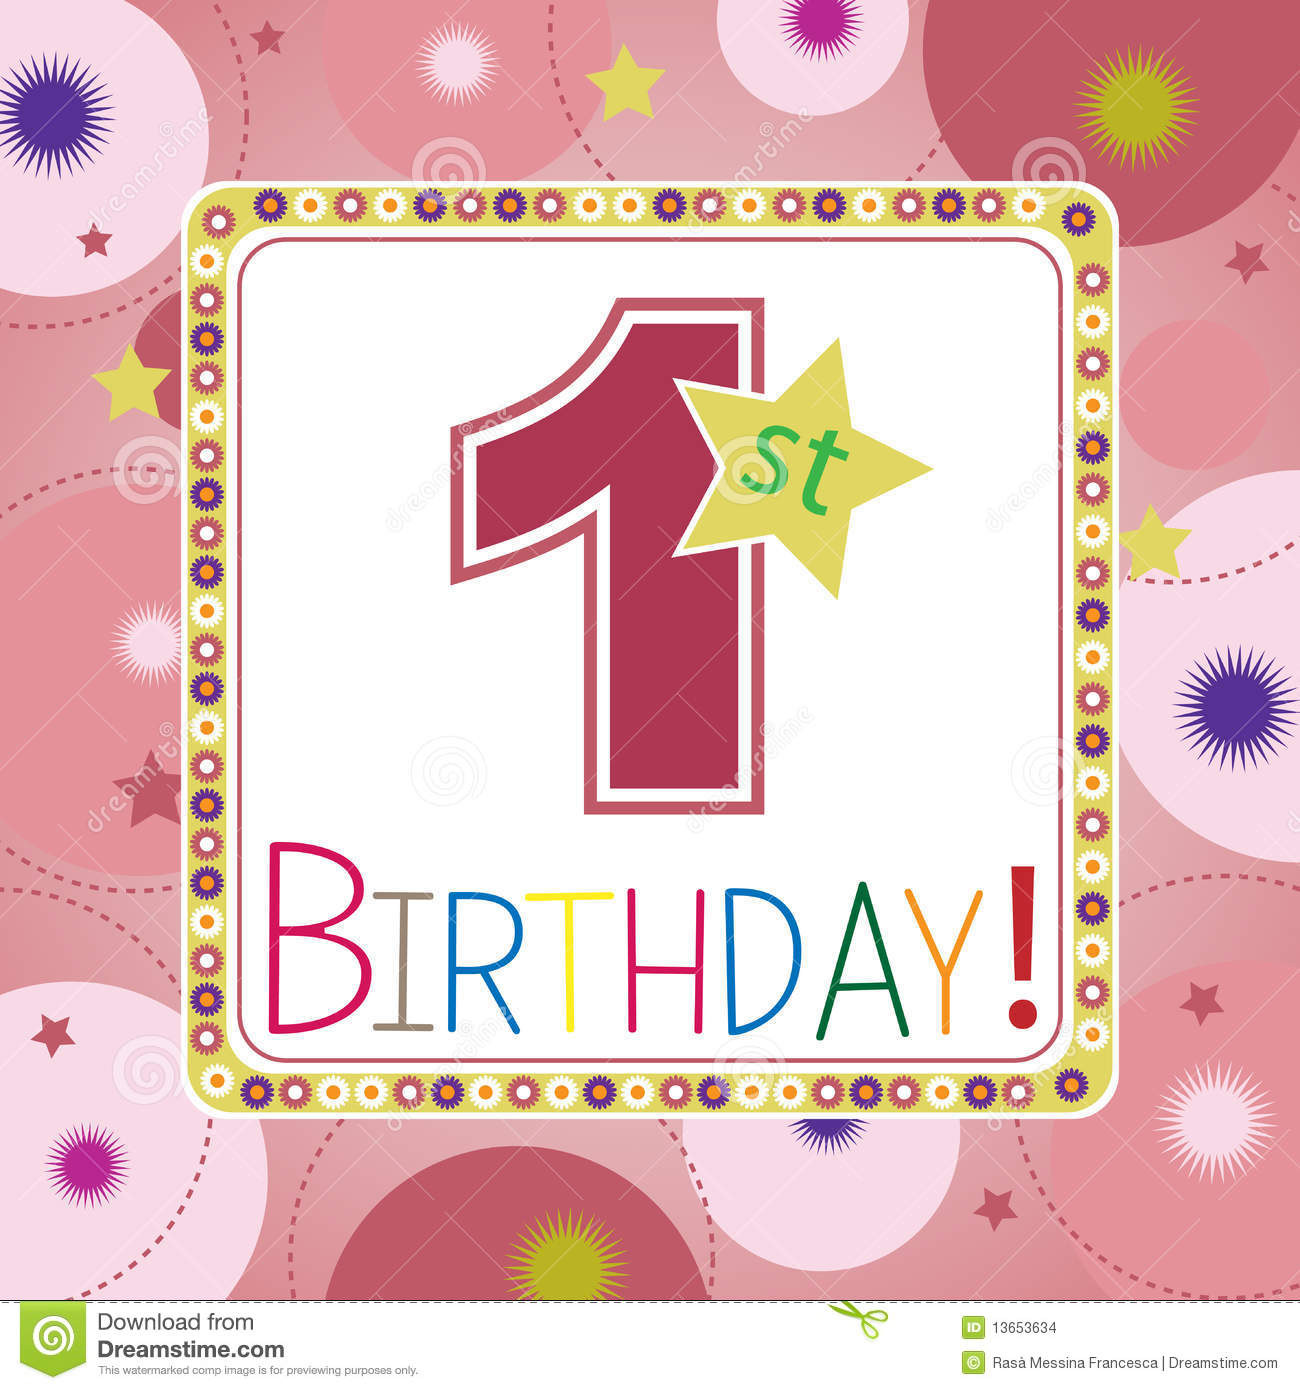 Girl 1st birthday clipart png download First Birthday Card Stock Images - Image: 13653634 png download